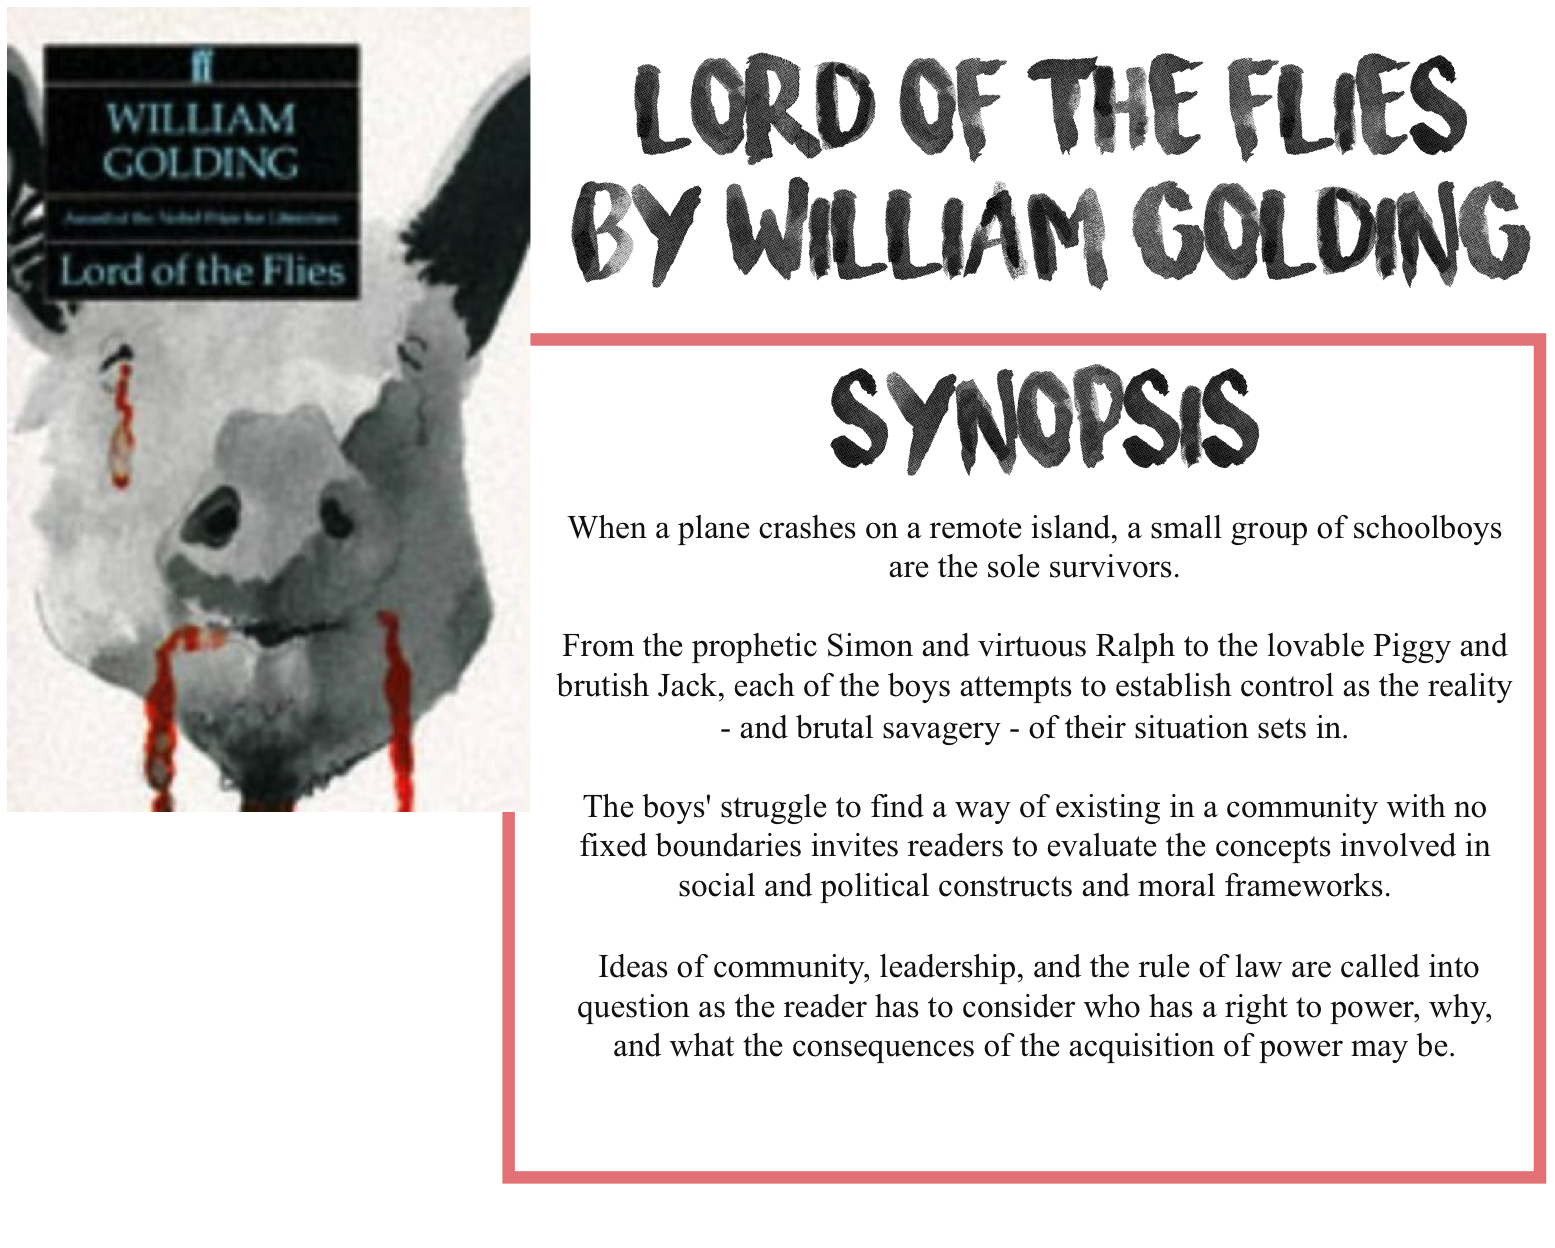 ryley reads lord of the flies by william golding book review i ll give a brief synopsis because i feel like this is one of those books everyone at least knows the general premise of following a plane crash on an